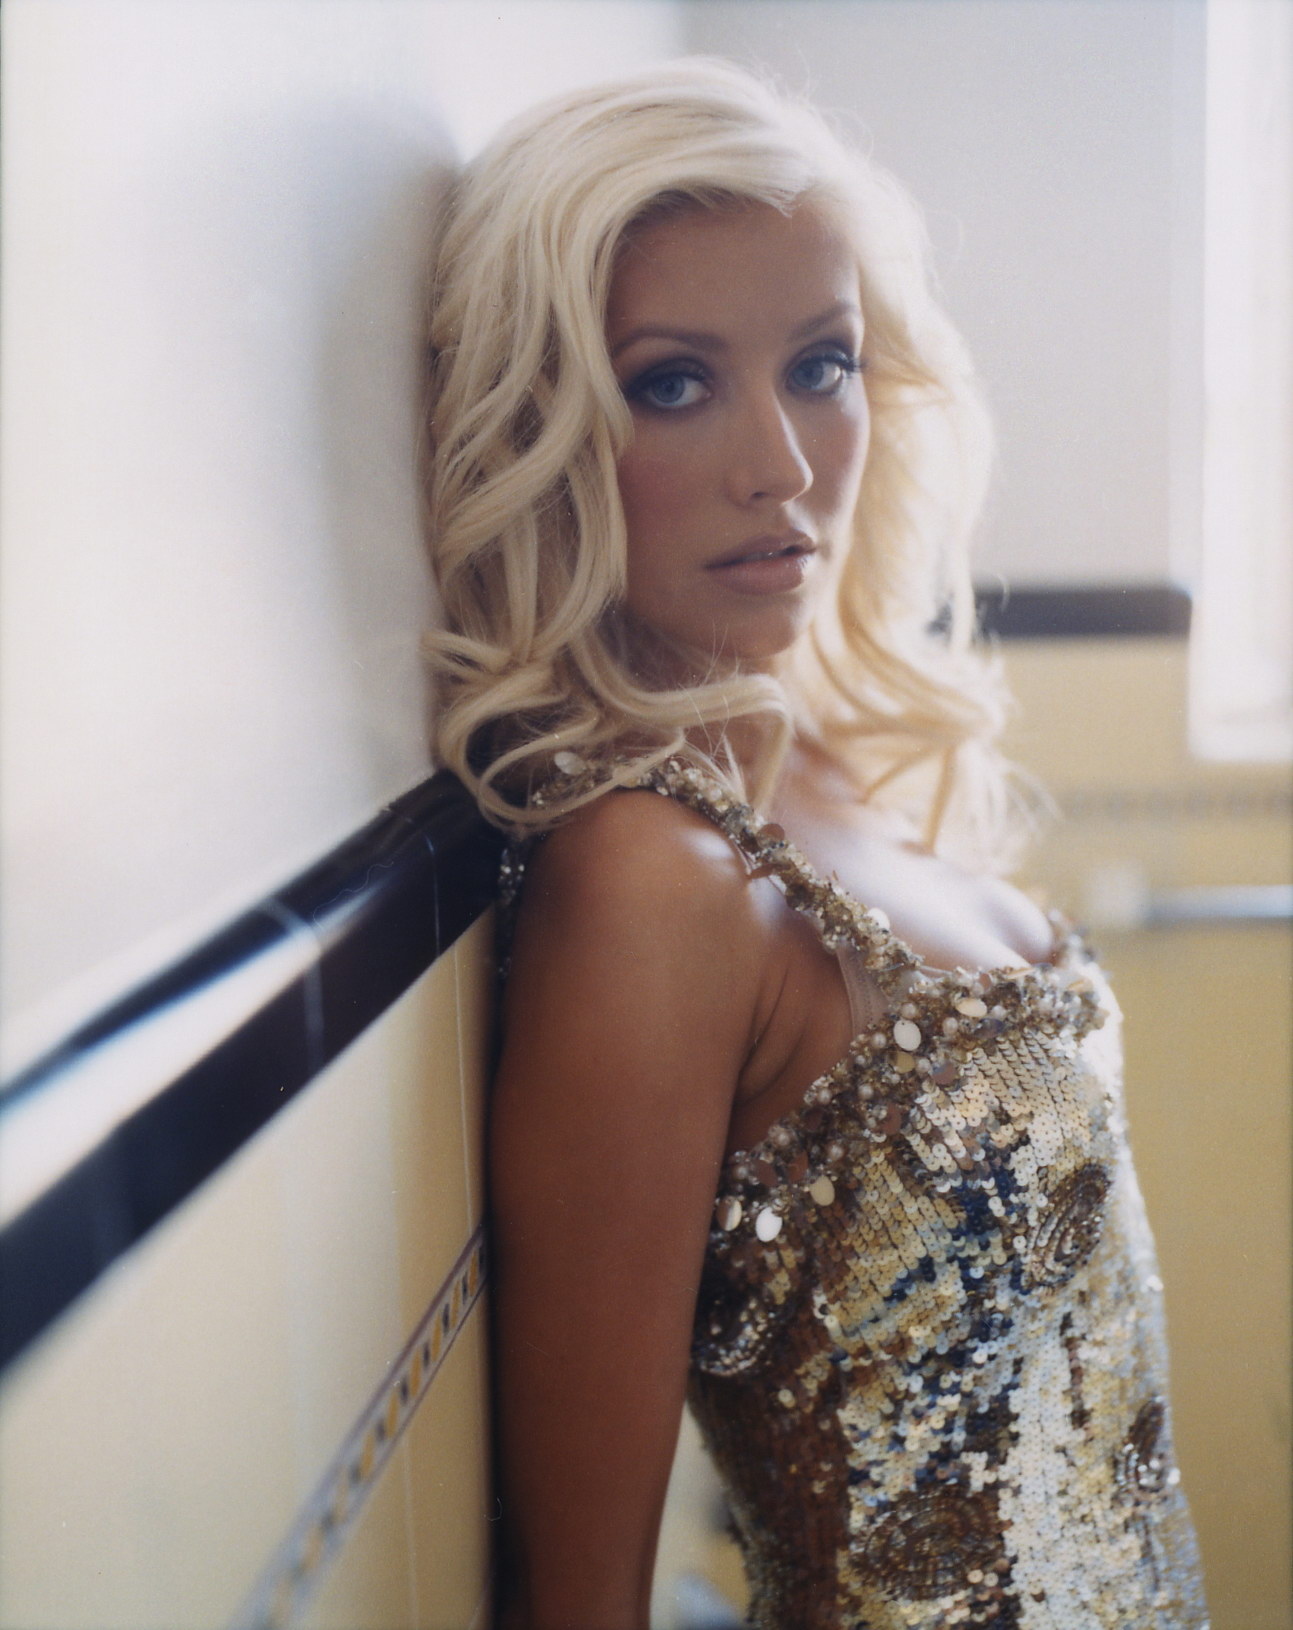 90950_Christina_Aguilera-002889_Cliff_Watts_photoshoot_122_883lo.jpg